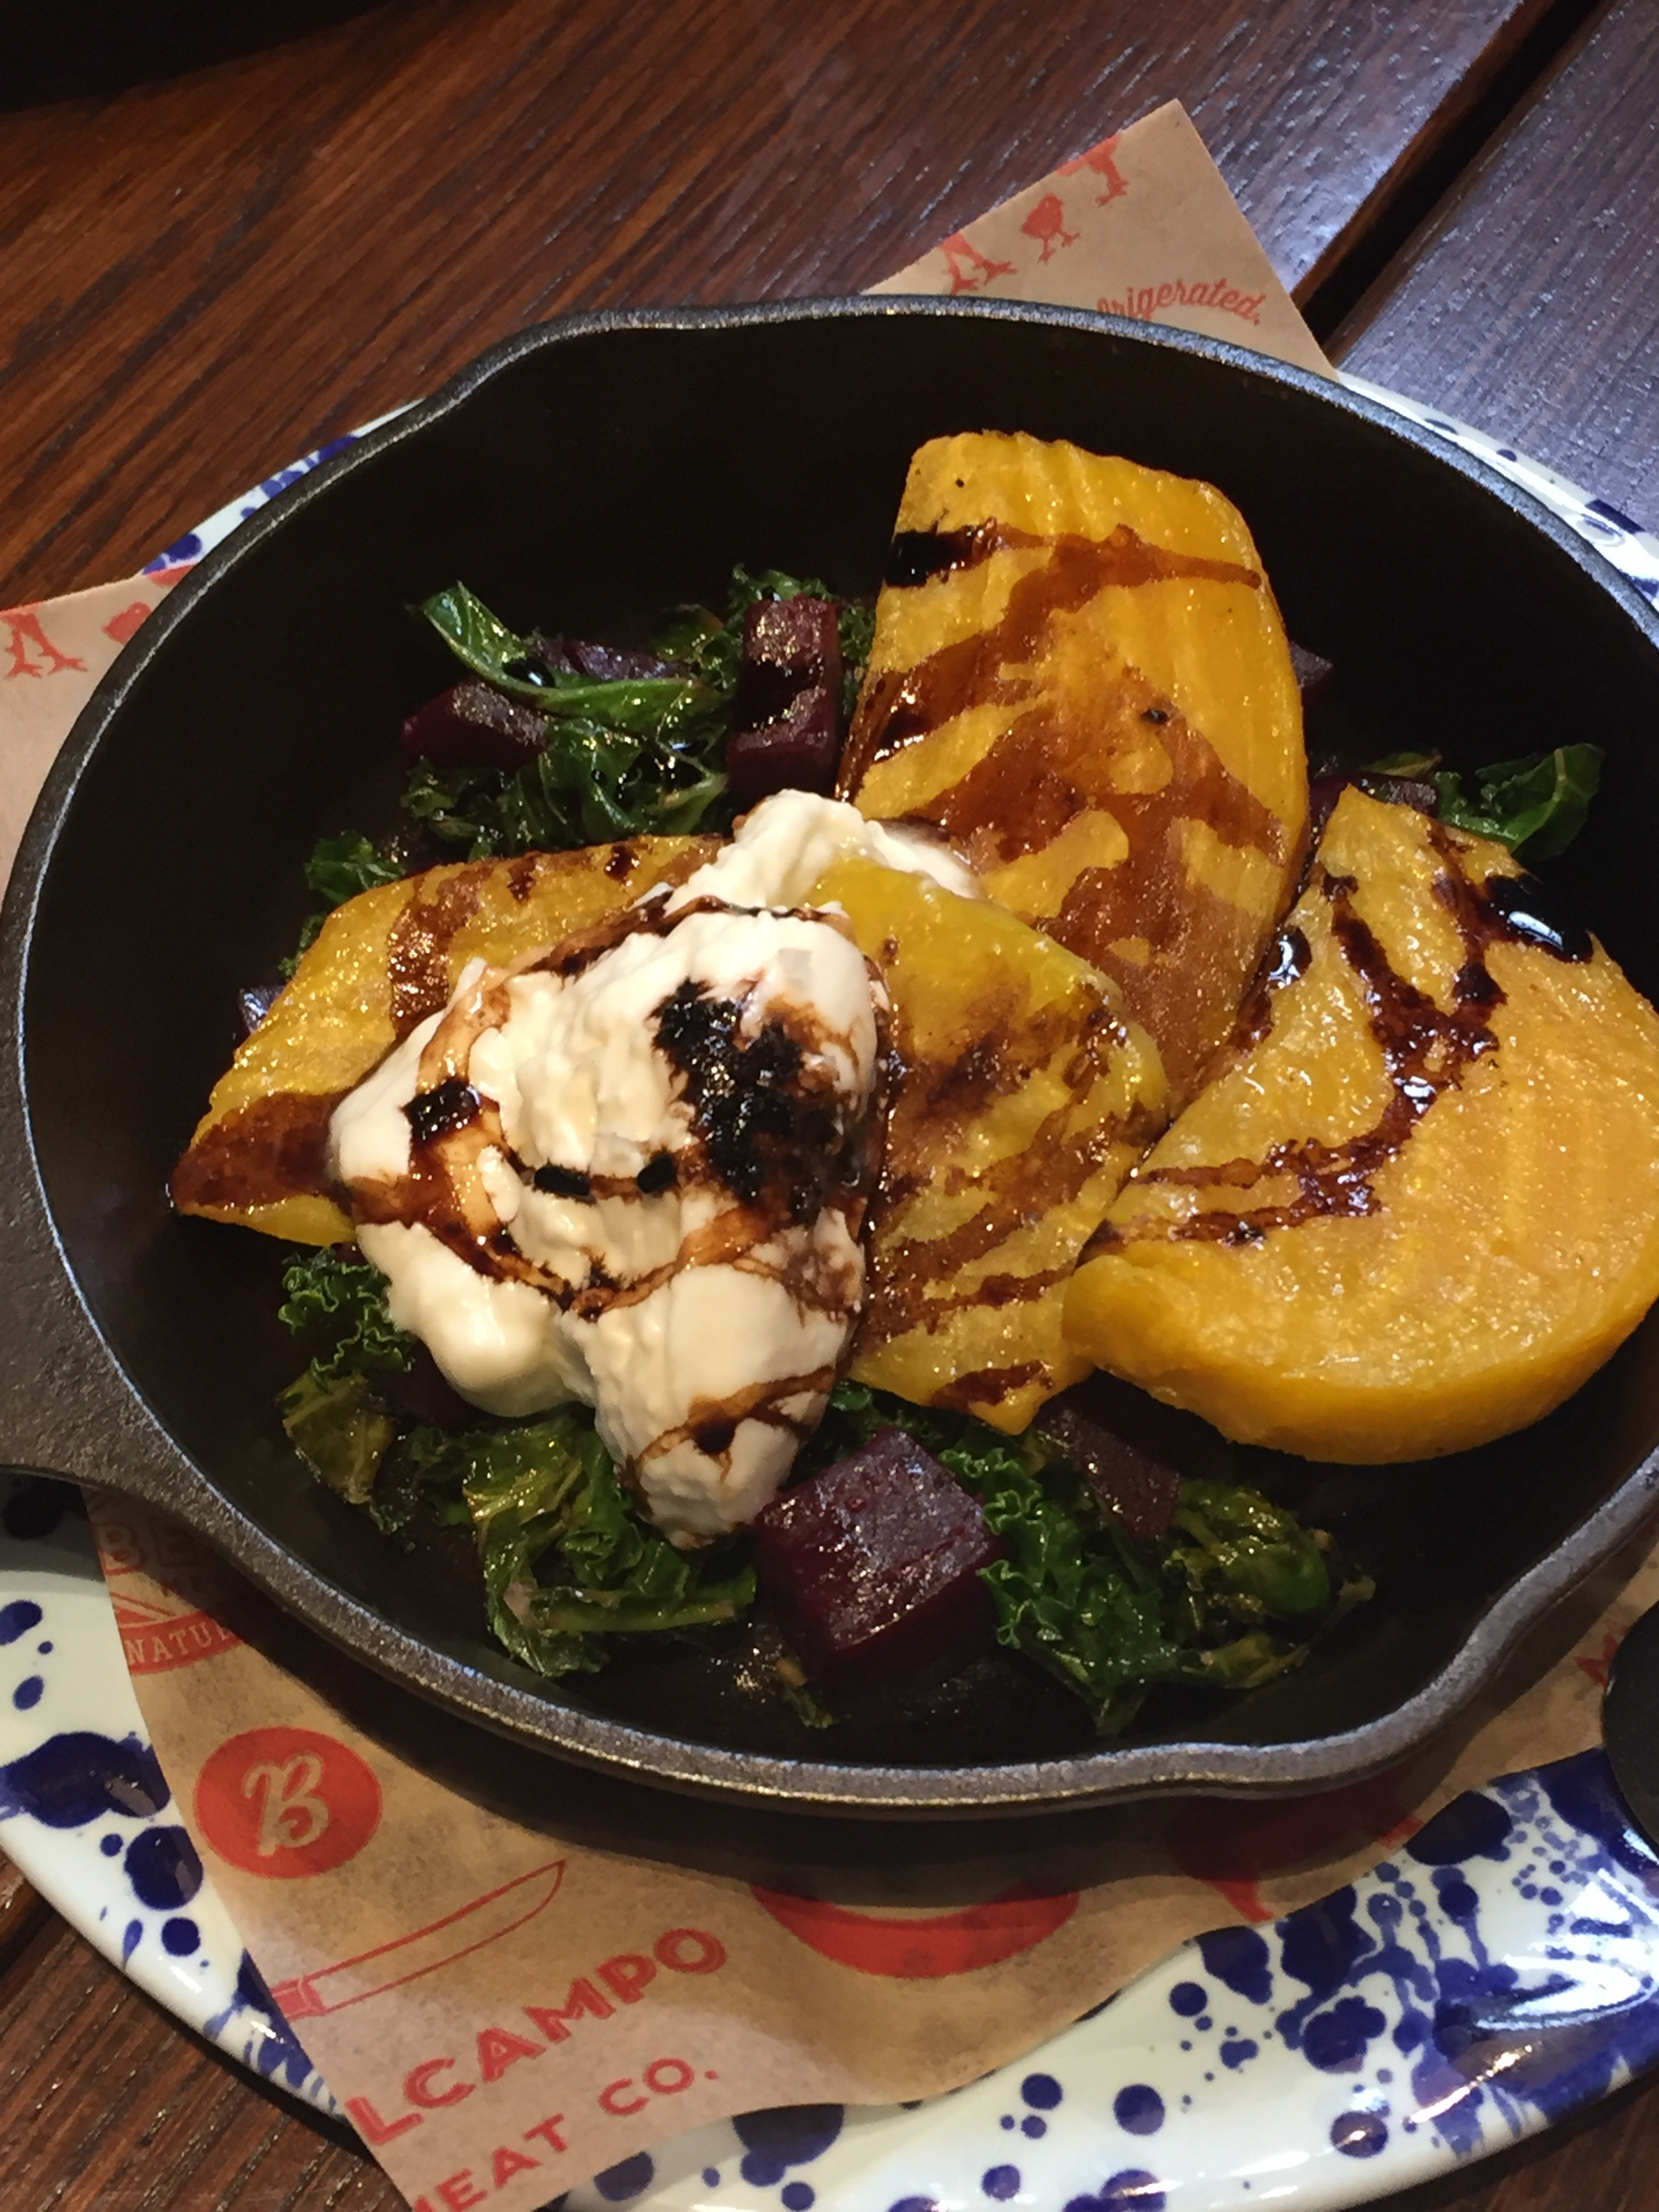 Roasted Red & Gold Beets with burrata, kale, and balsamic reduction.